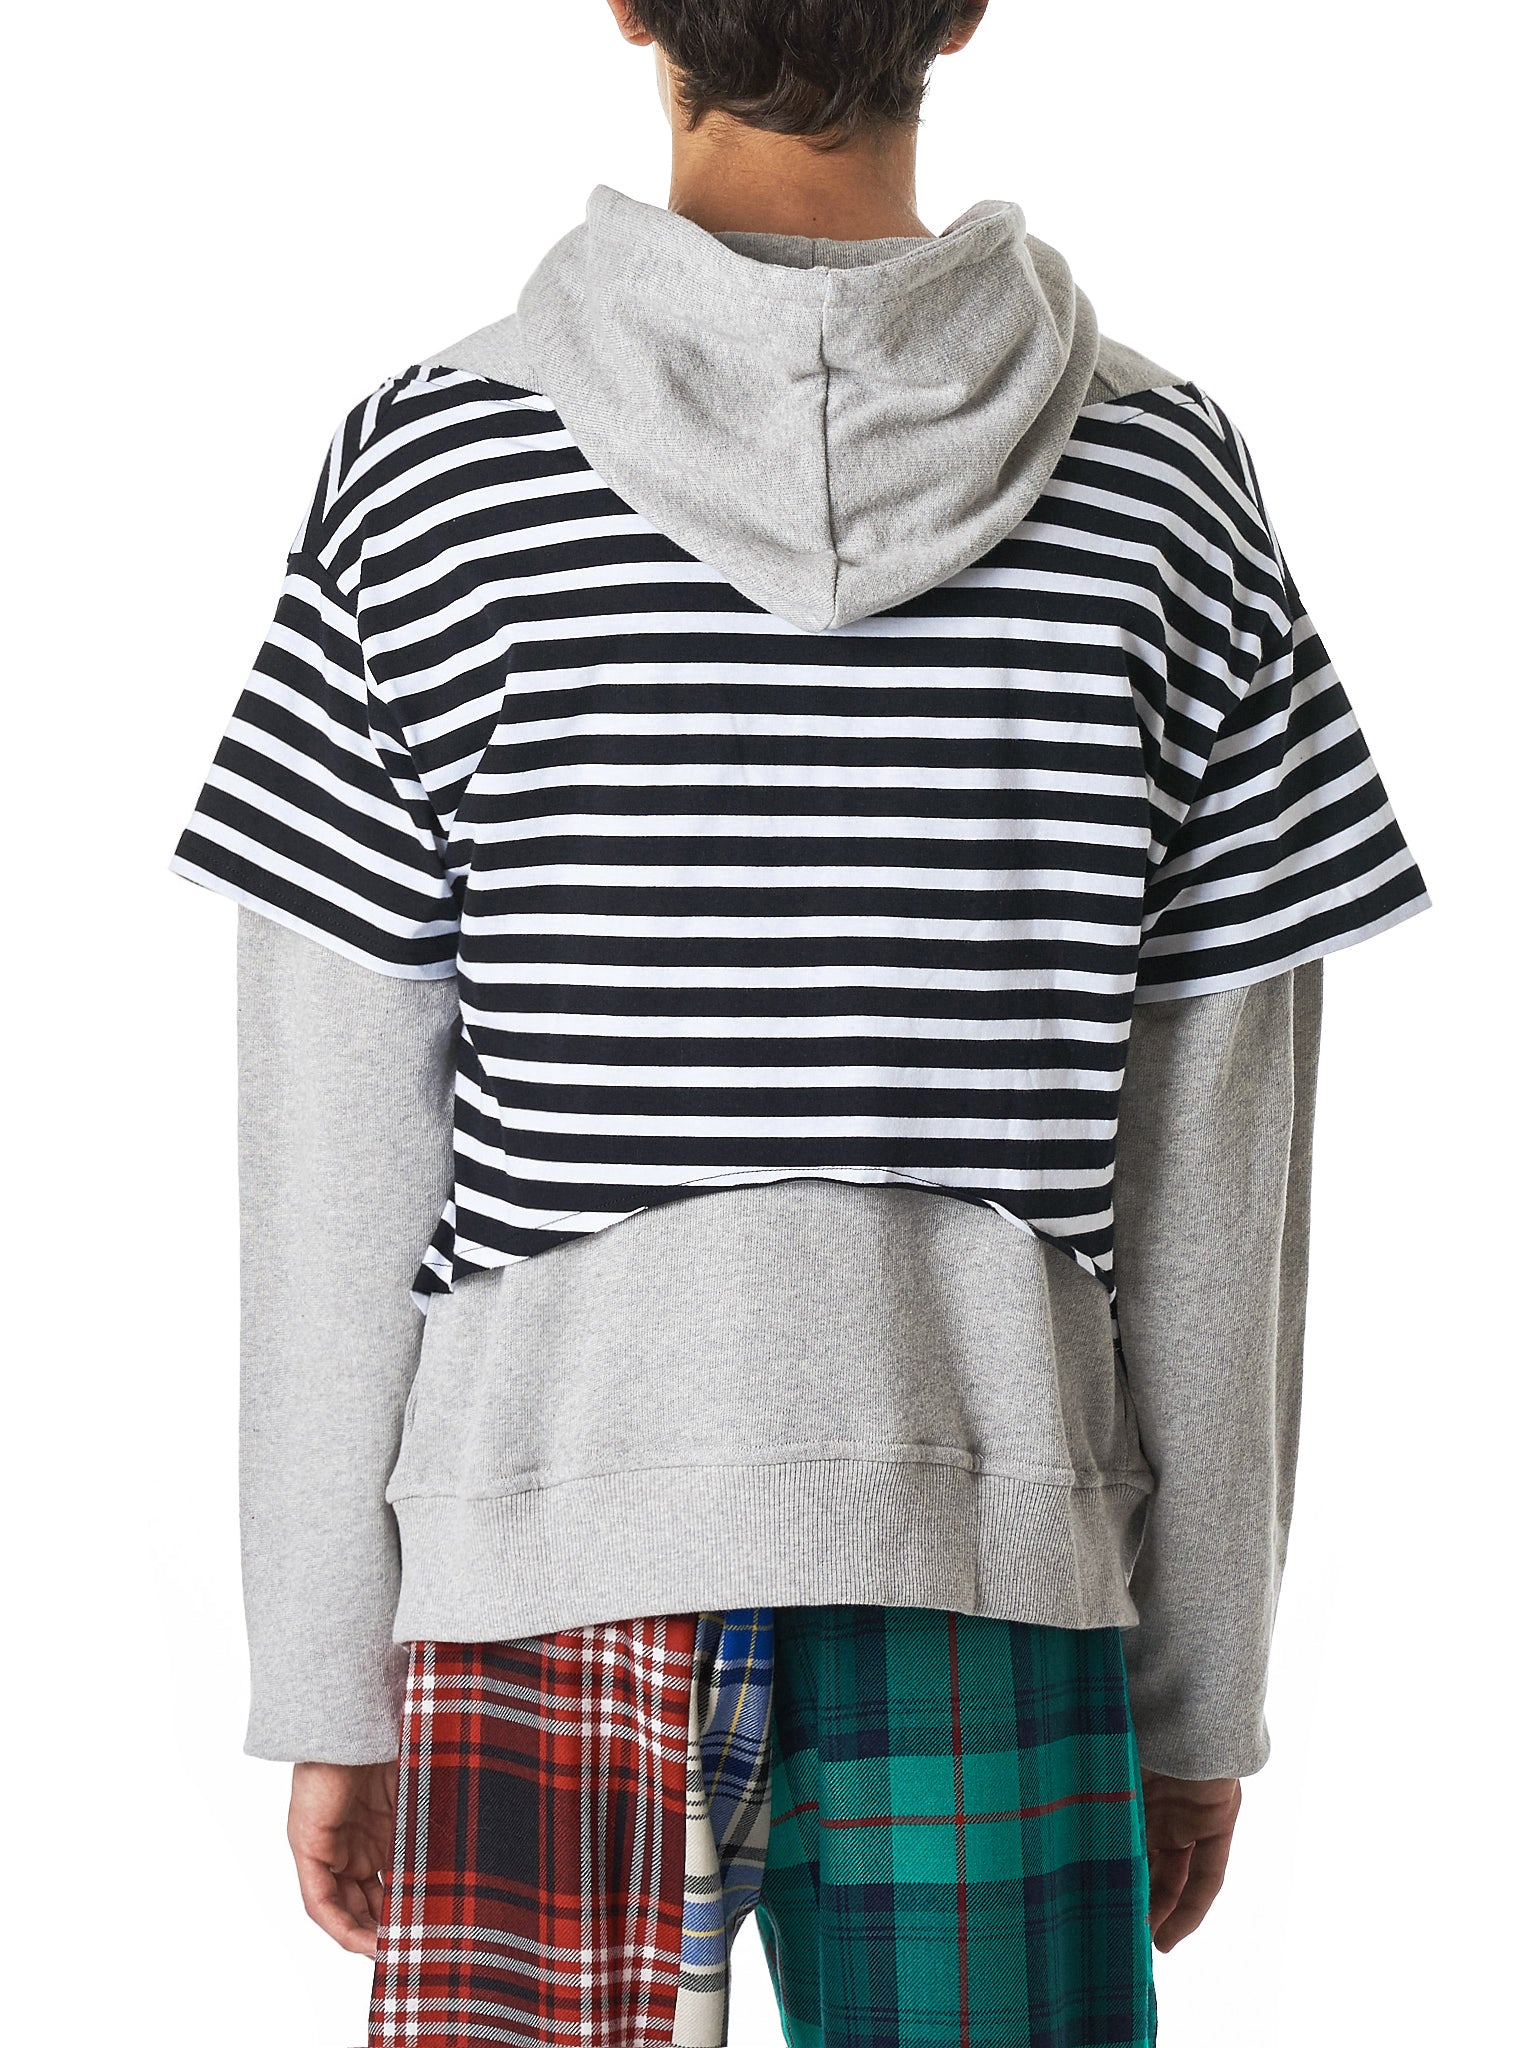 Charles Jeffrey Loverboy Striped Hoodie - Hlorenzo Back